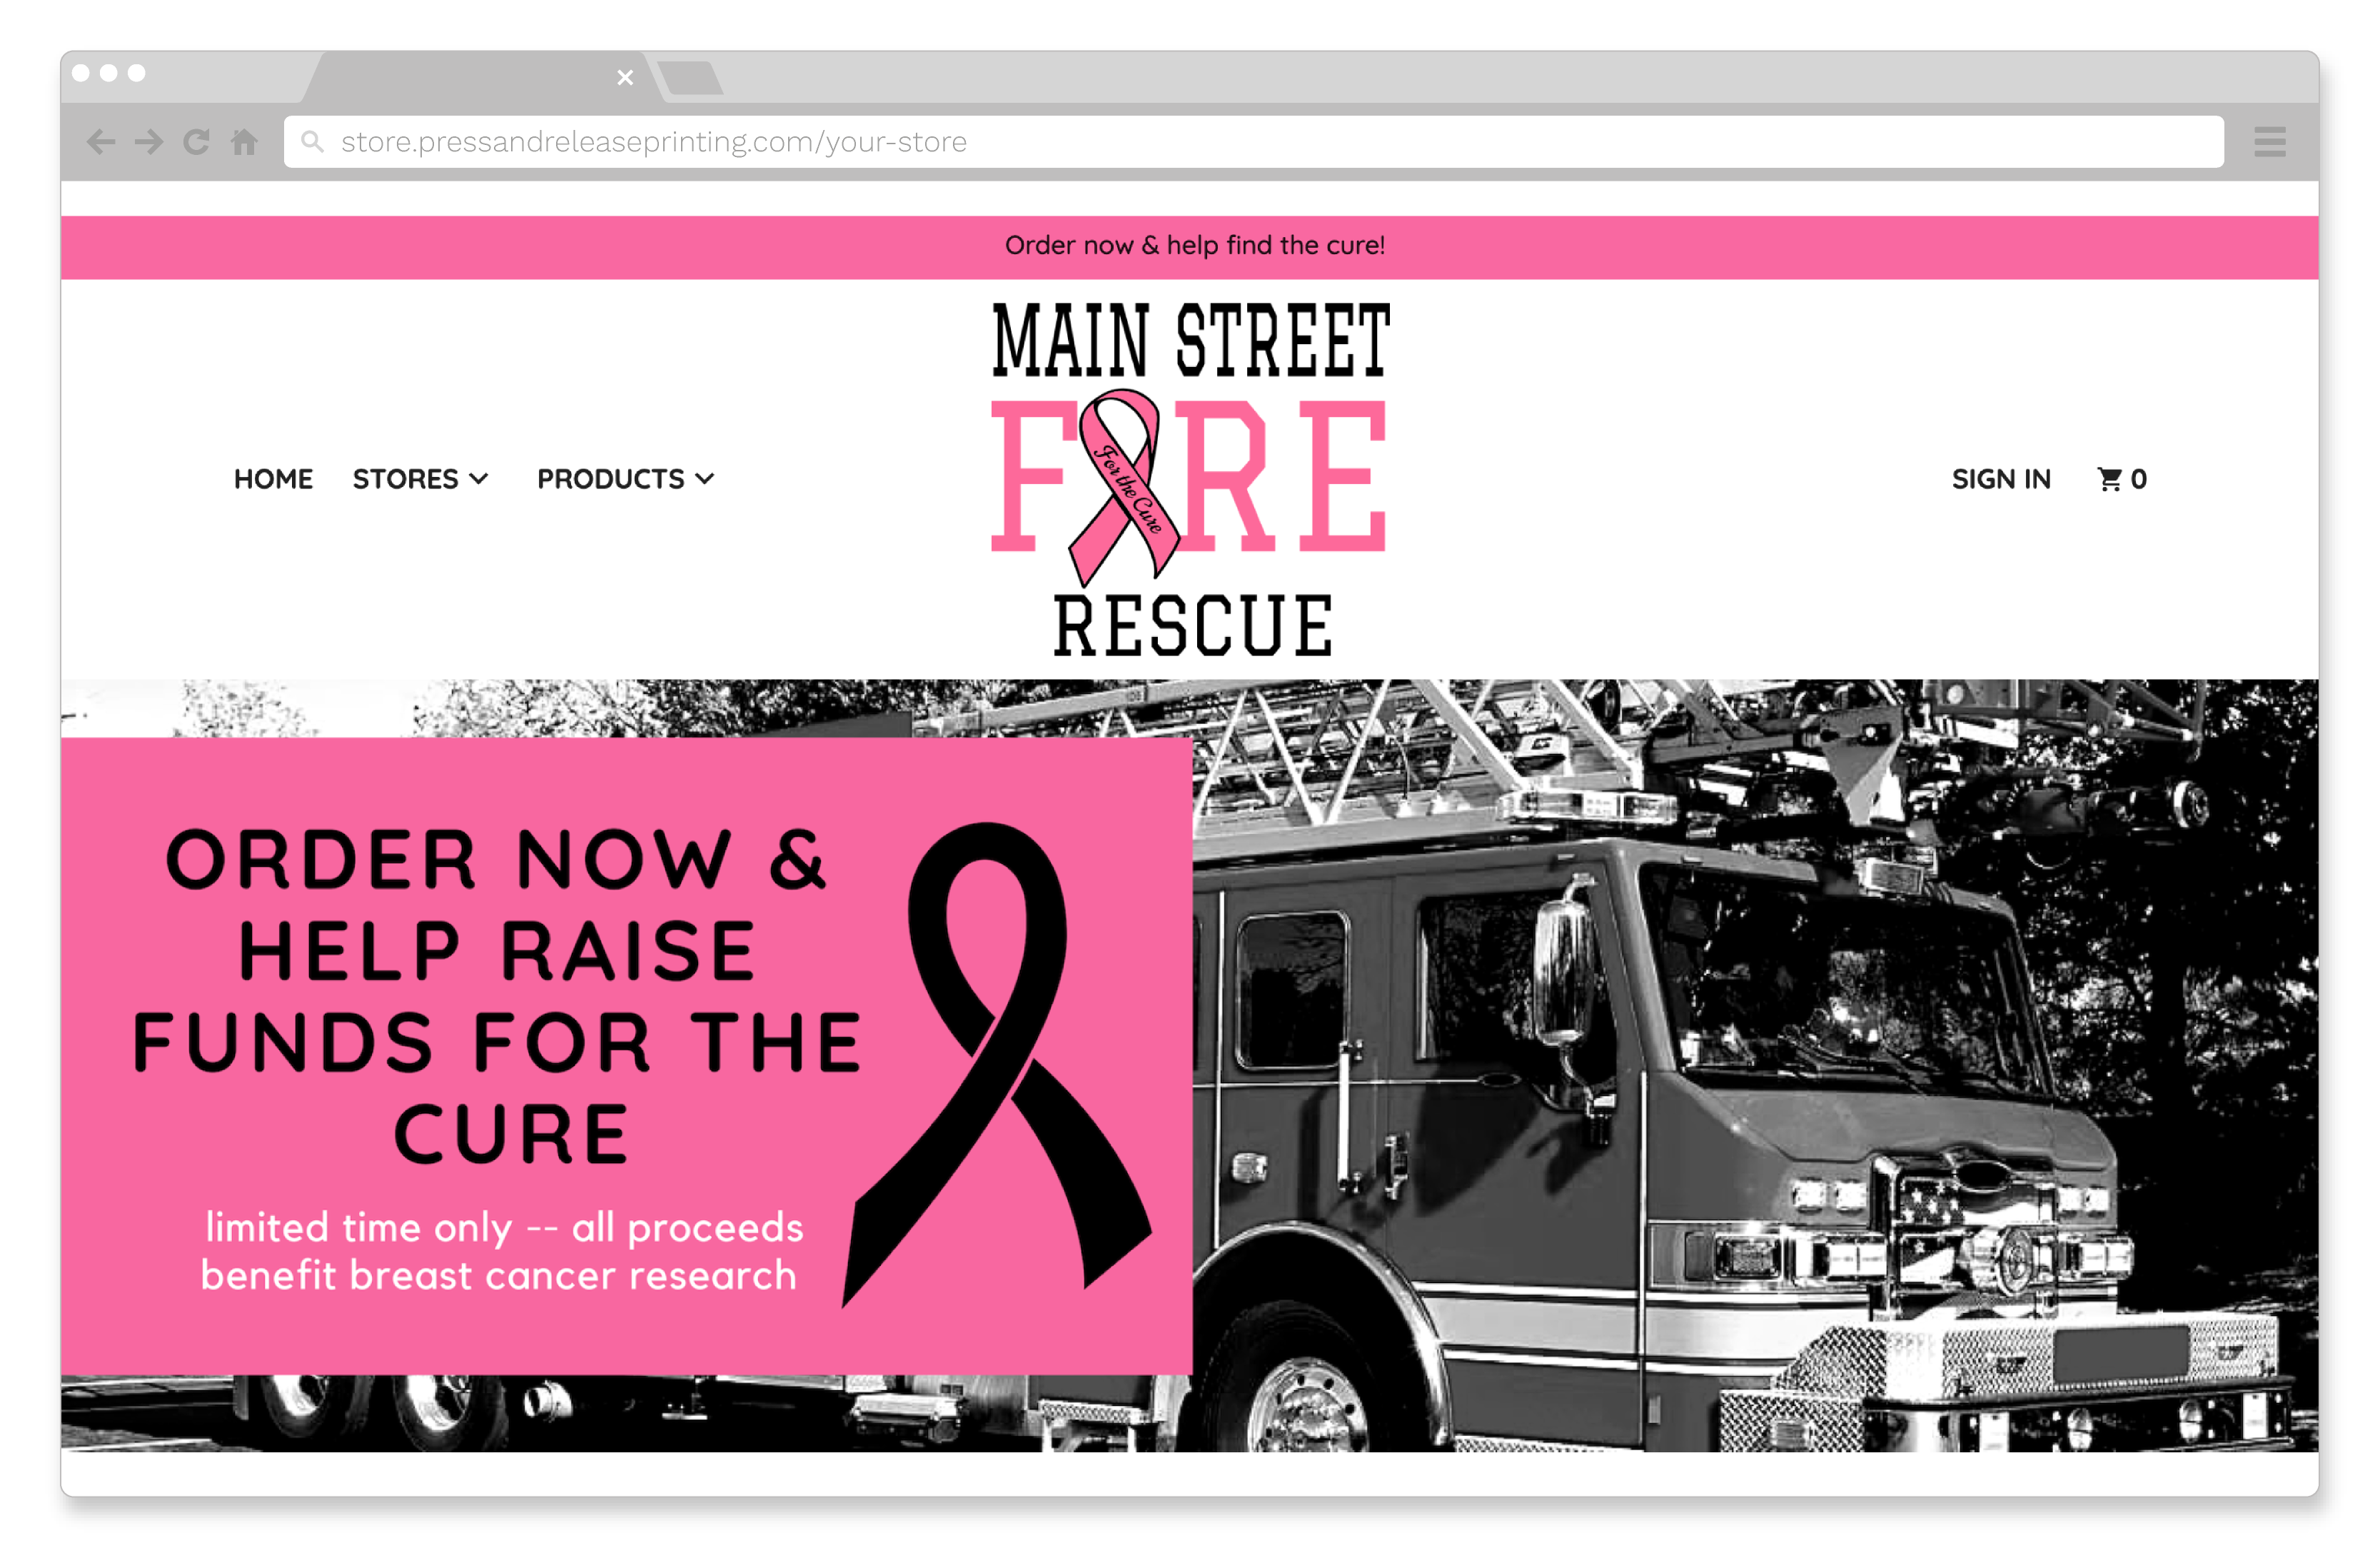 A fundraising store for breast cancer research.